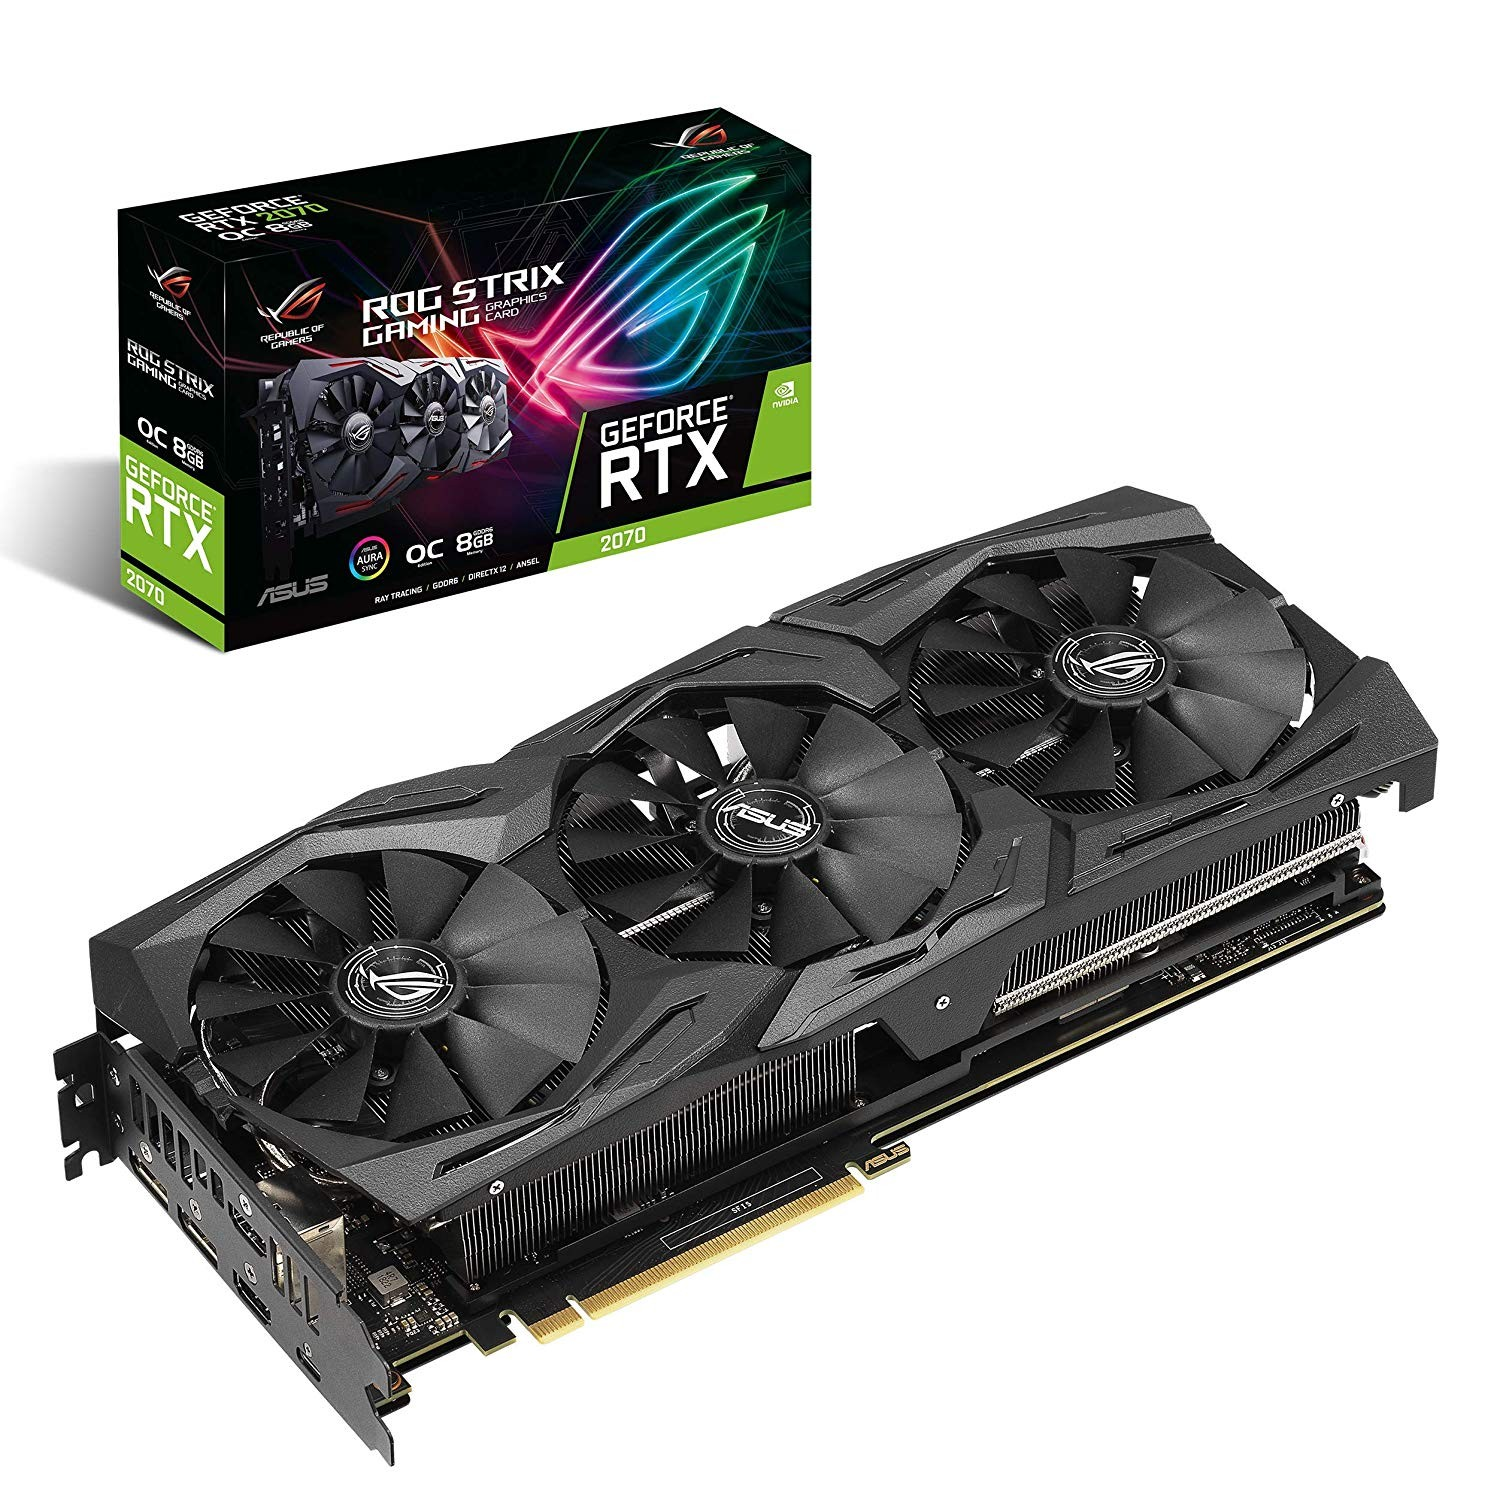 Image 1 of Asus Rog Strix Geforce Rtx2070 Oc Edition 8gb Gddr6 With Powerful Cooling For Higher Refresh Rates 90YV0C90-M0NA00